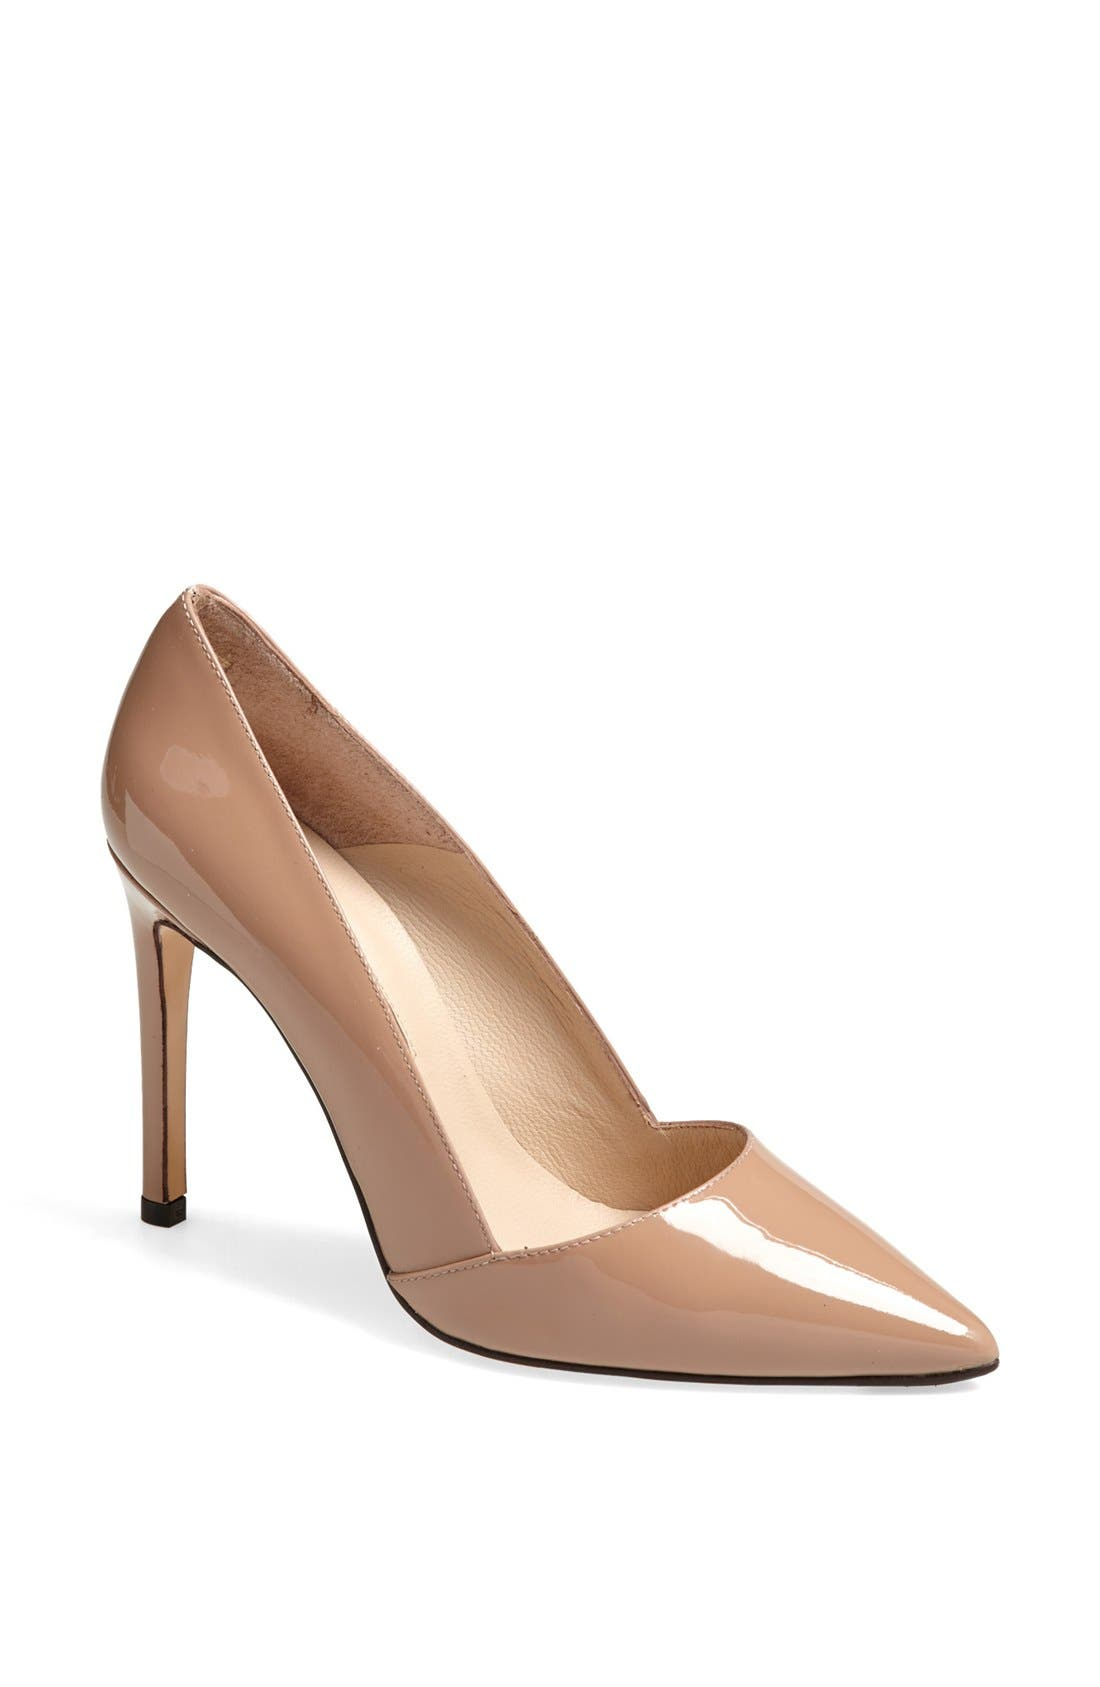 Main Image - Charles David 'Passion' Pointy Toe Pump